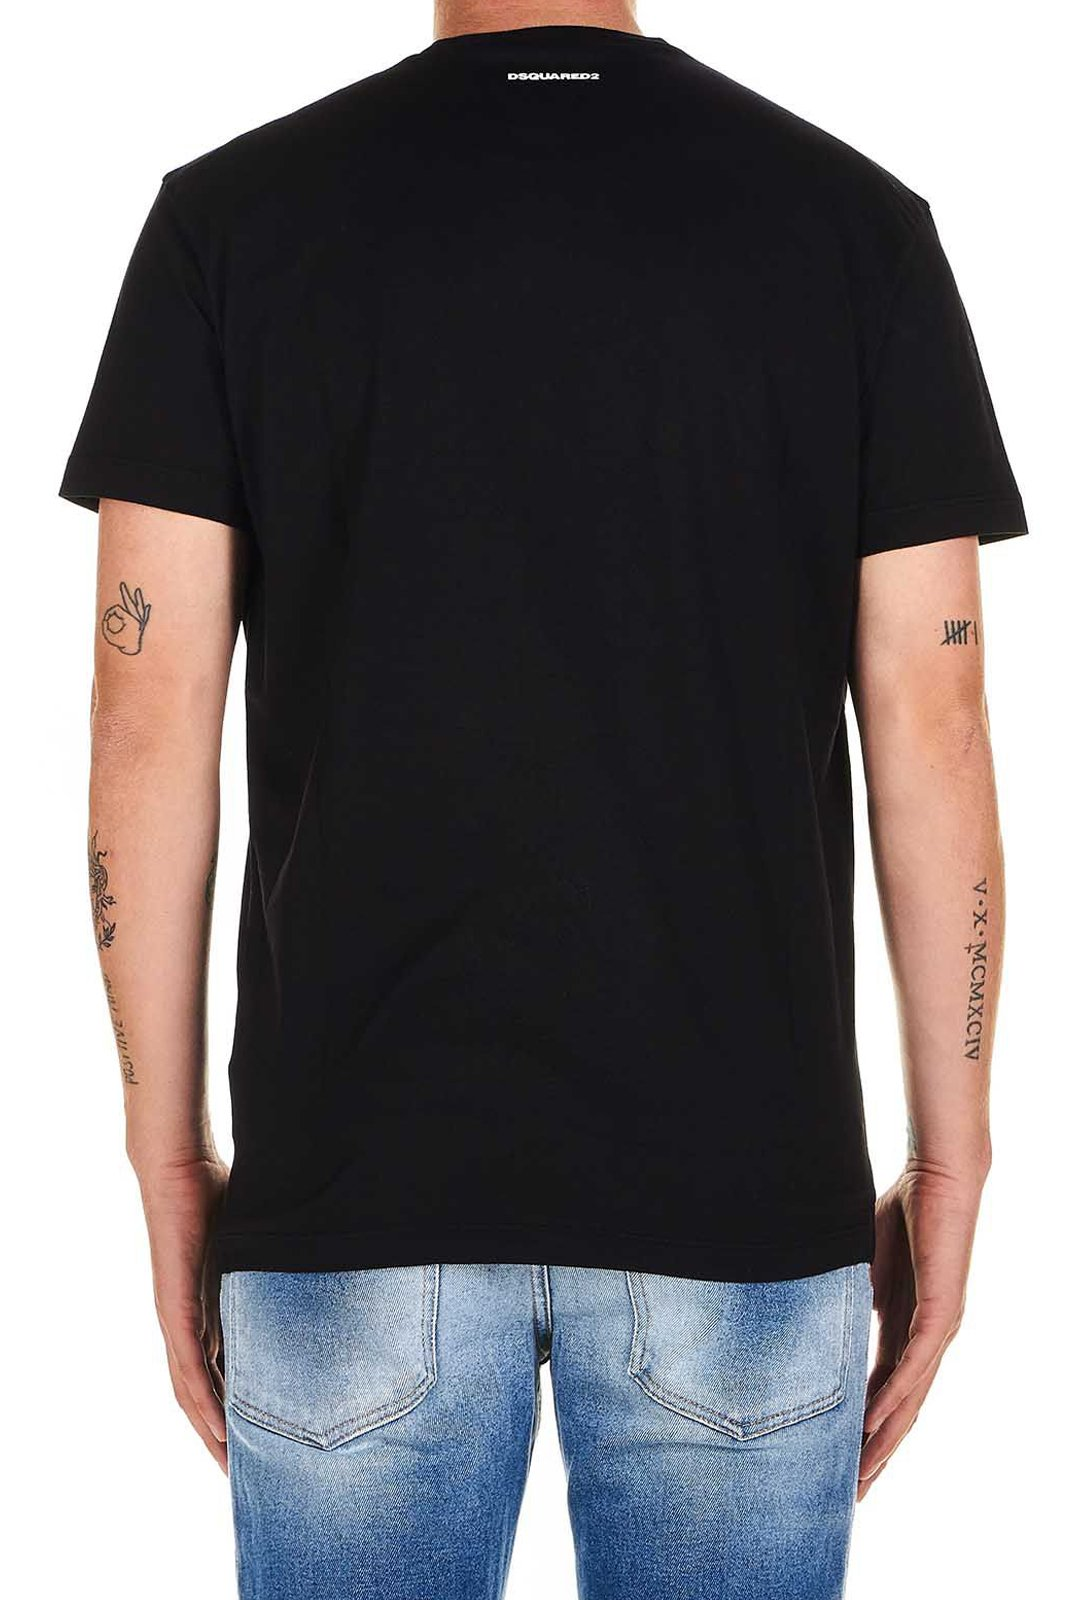 Tee-shirts  Dsquared2 S74GD0704 900 BLACK